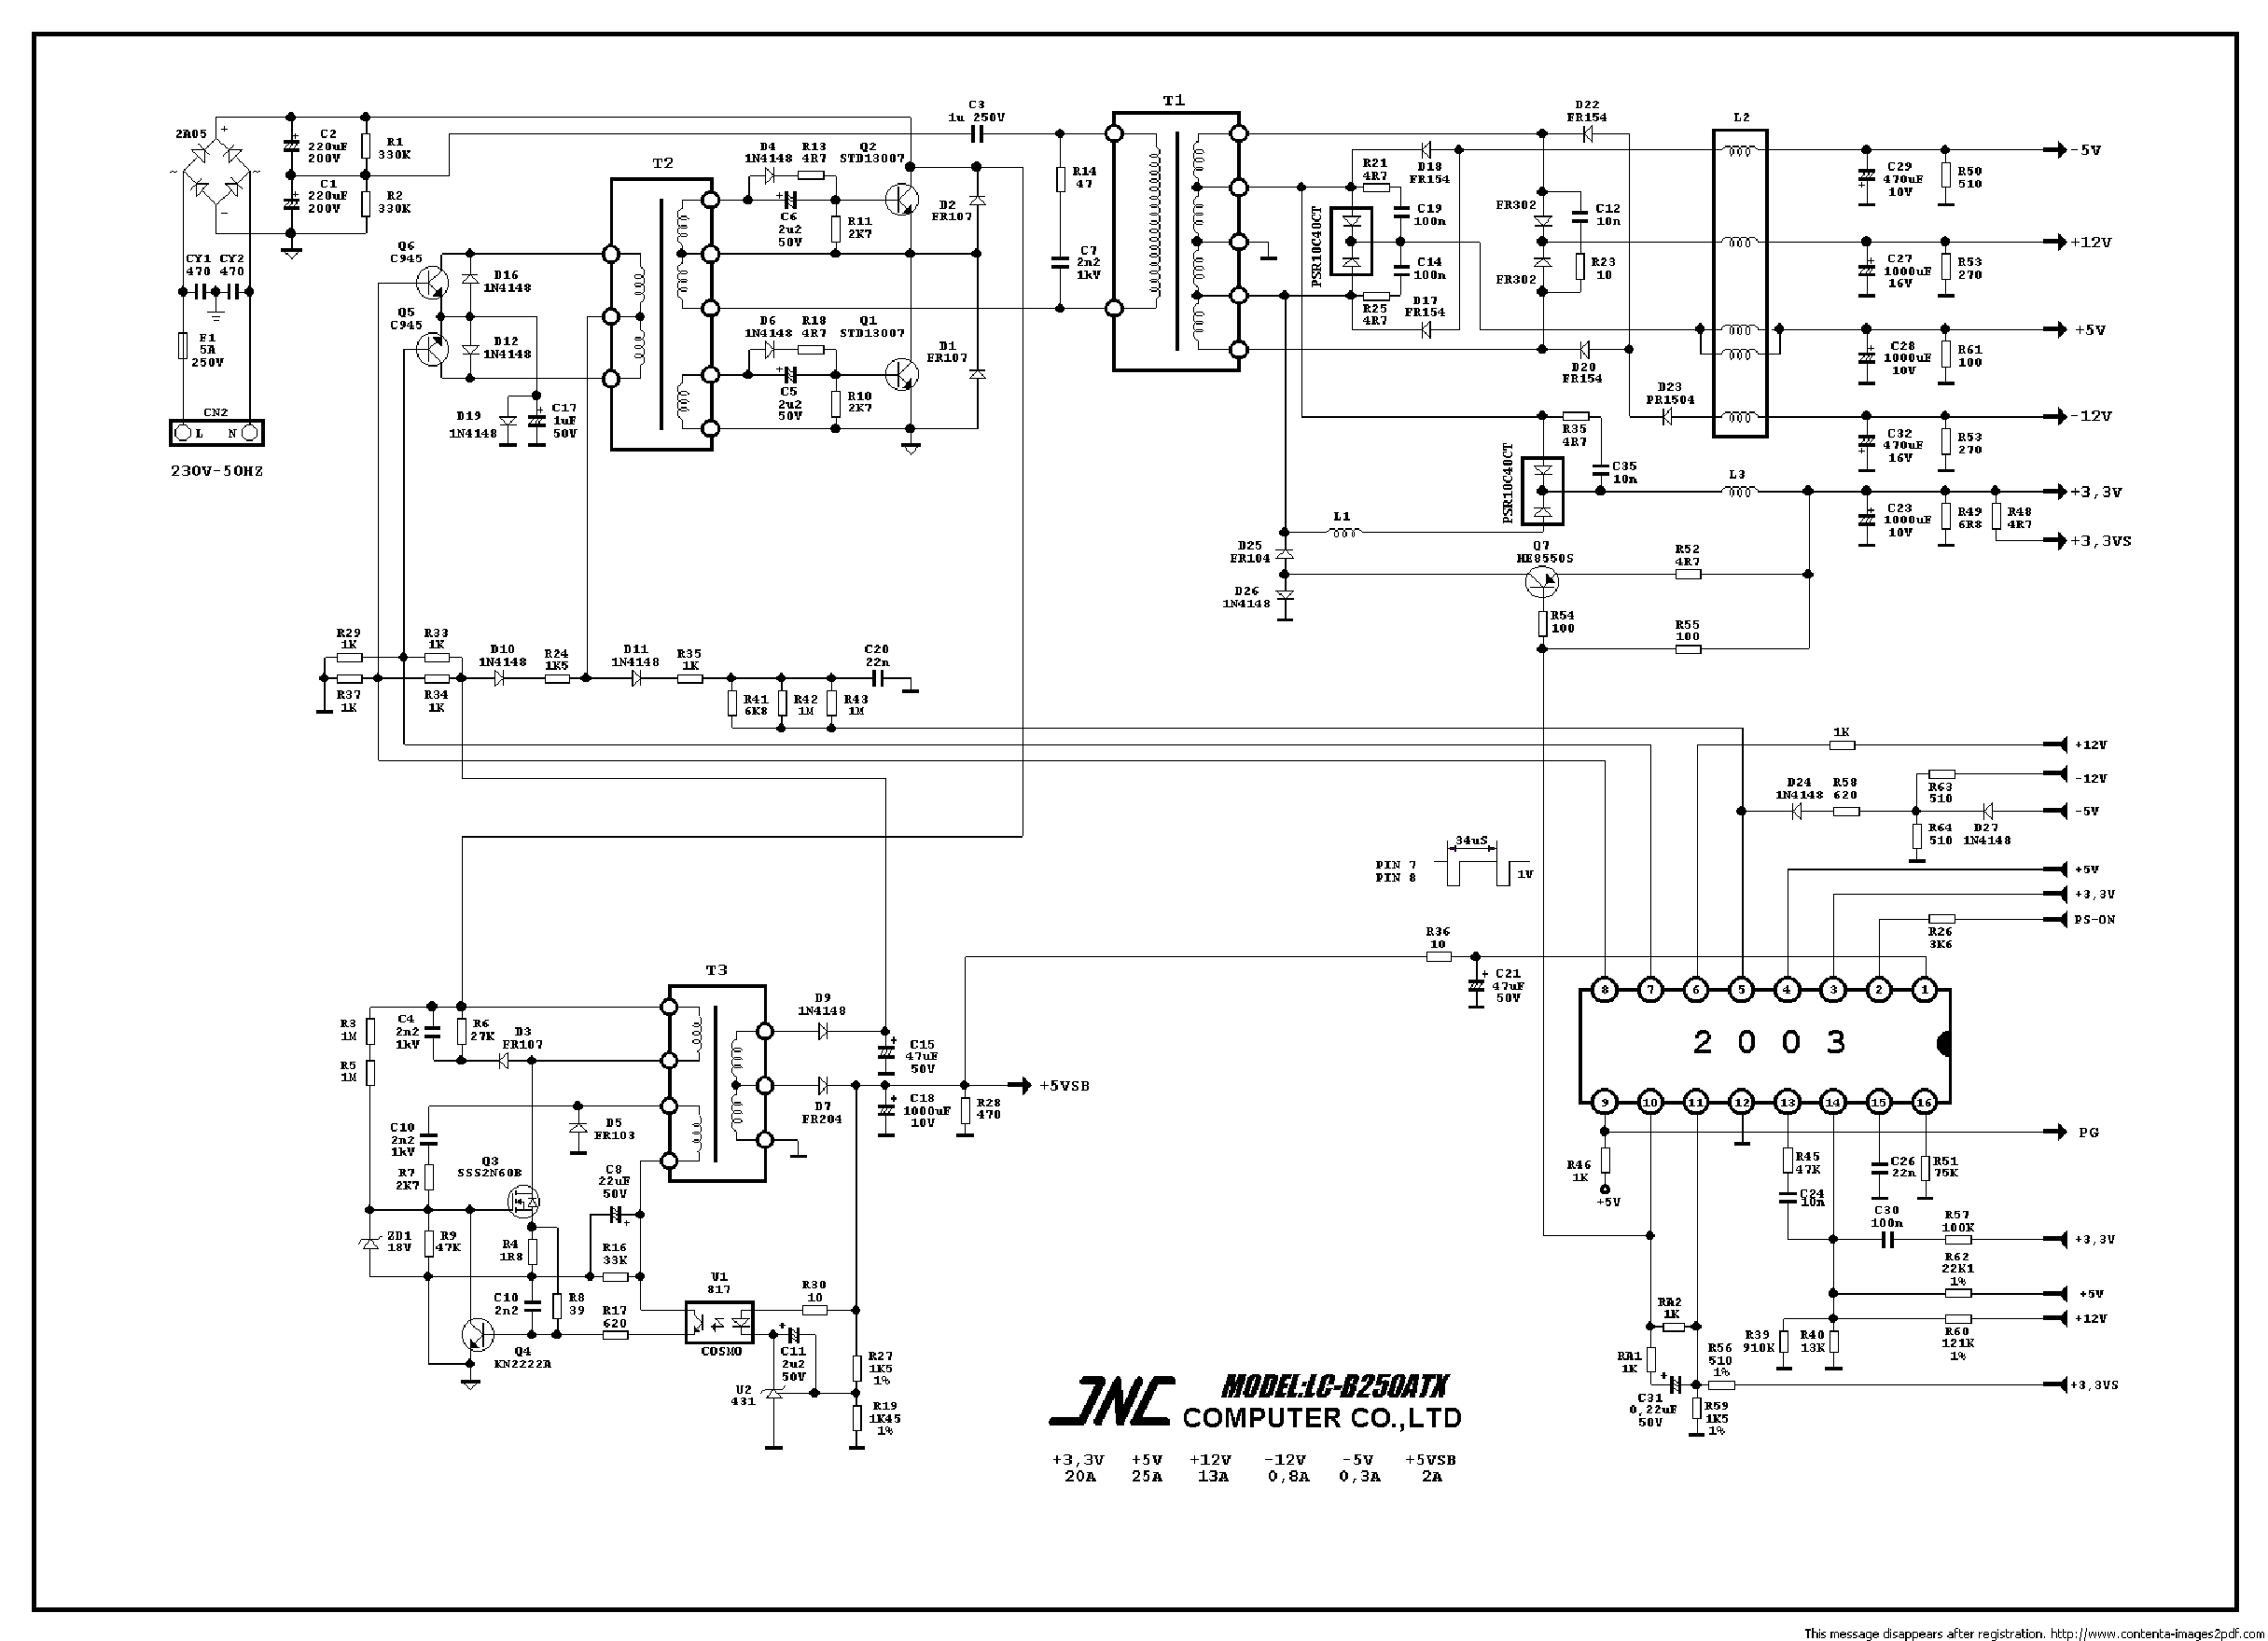 Atx Power Supply Schematic Pdf - Somurich.com